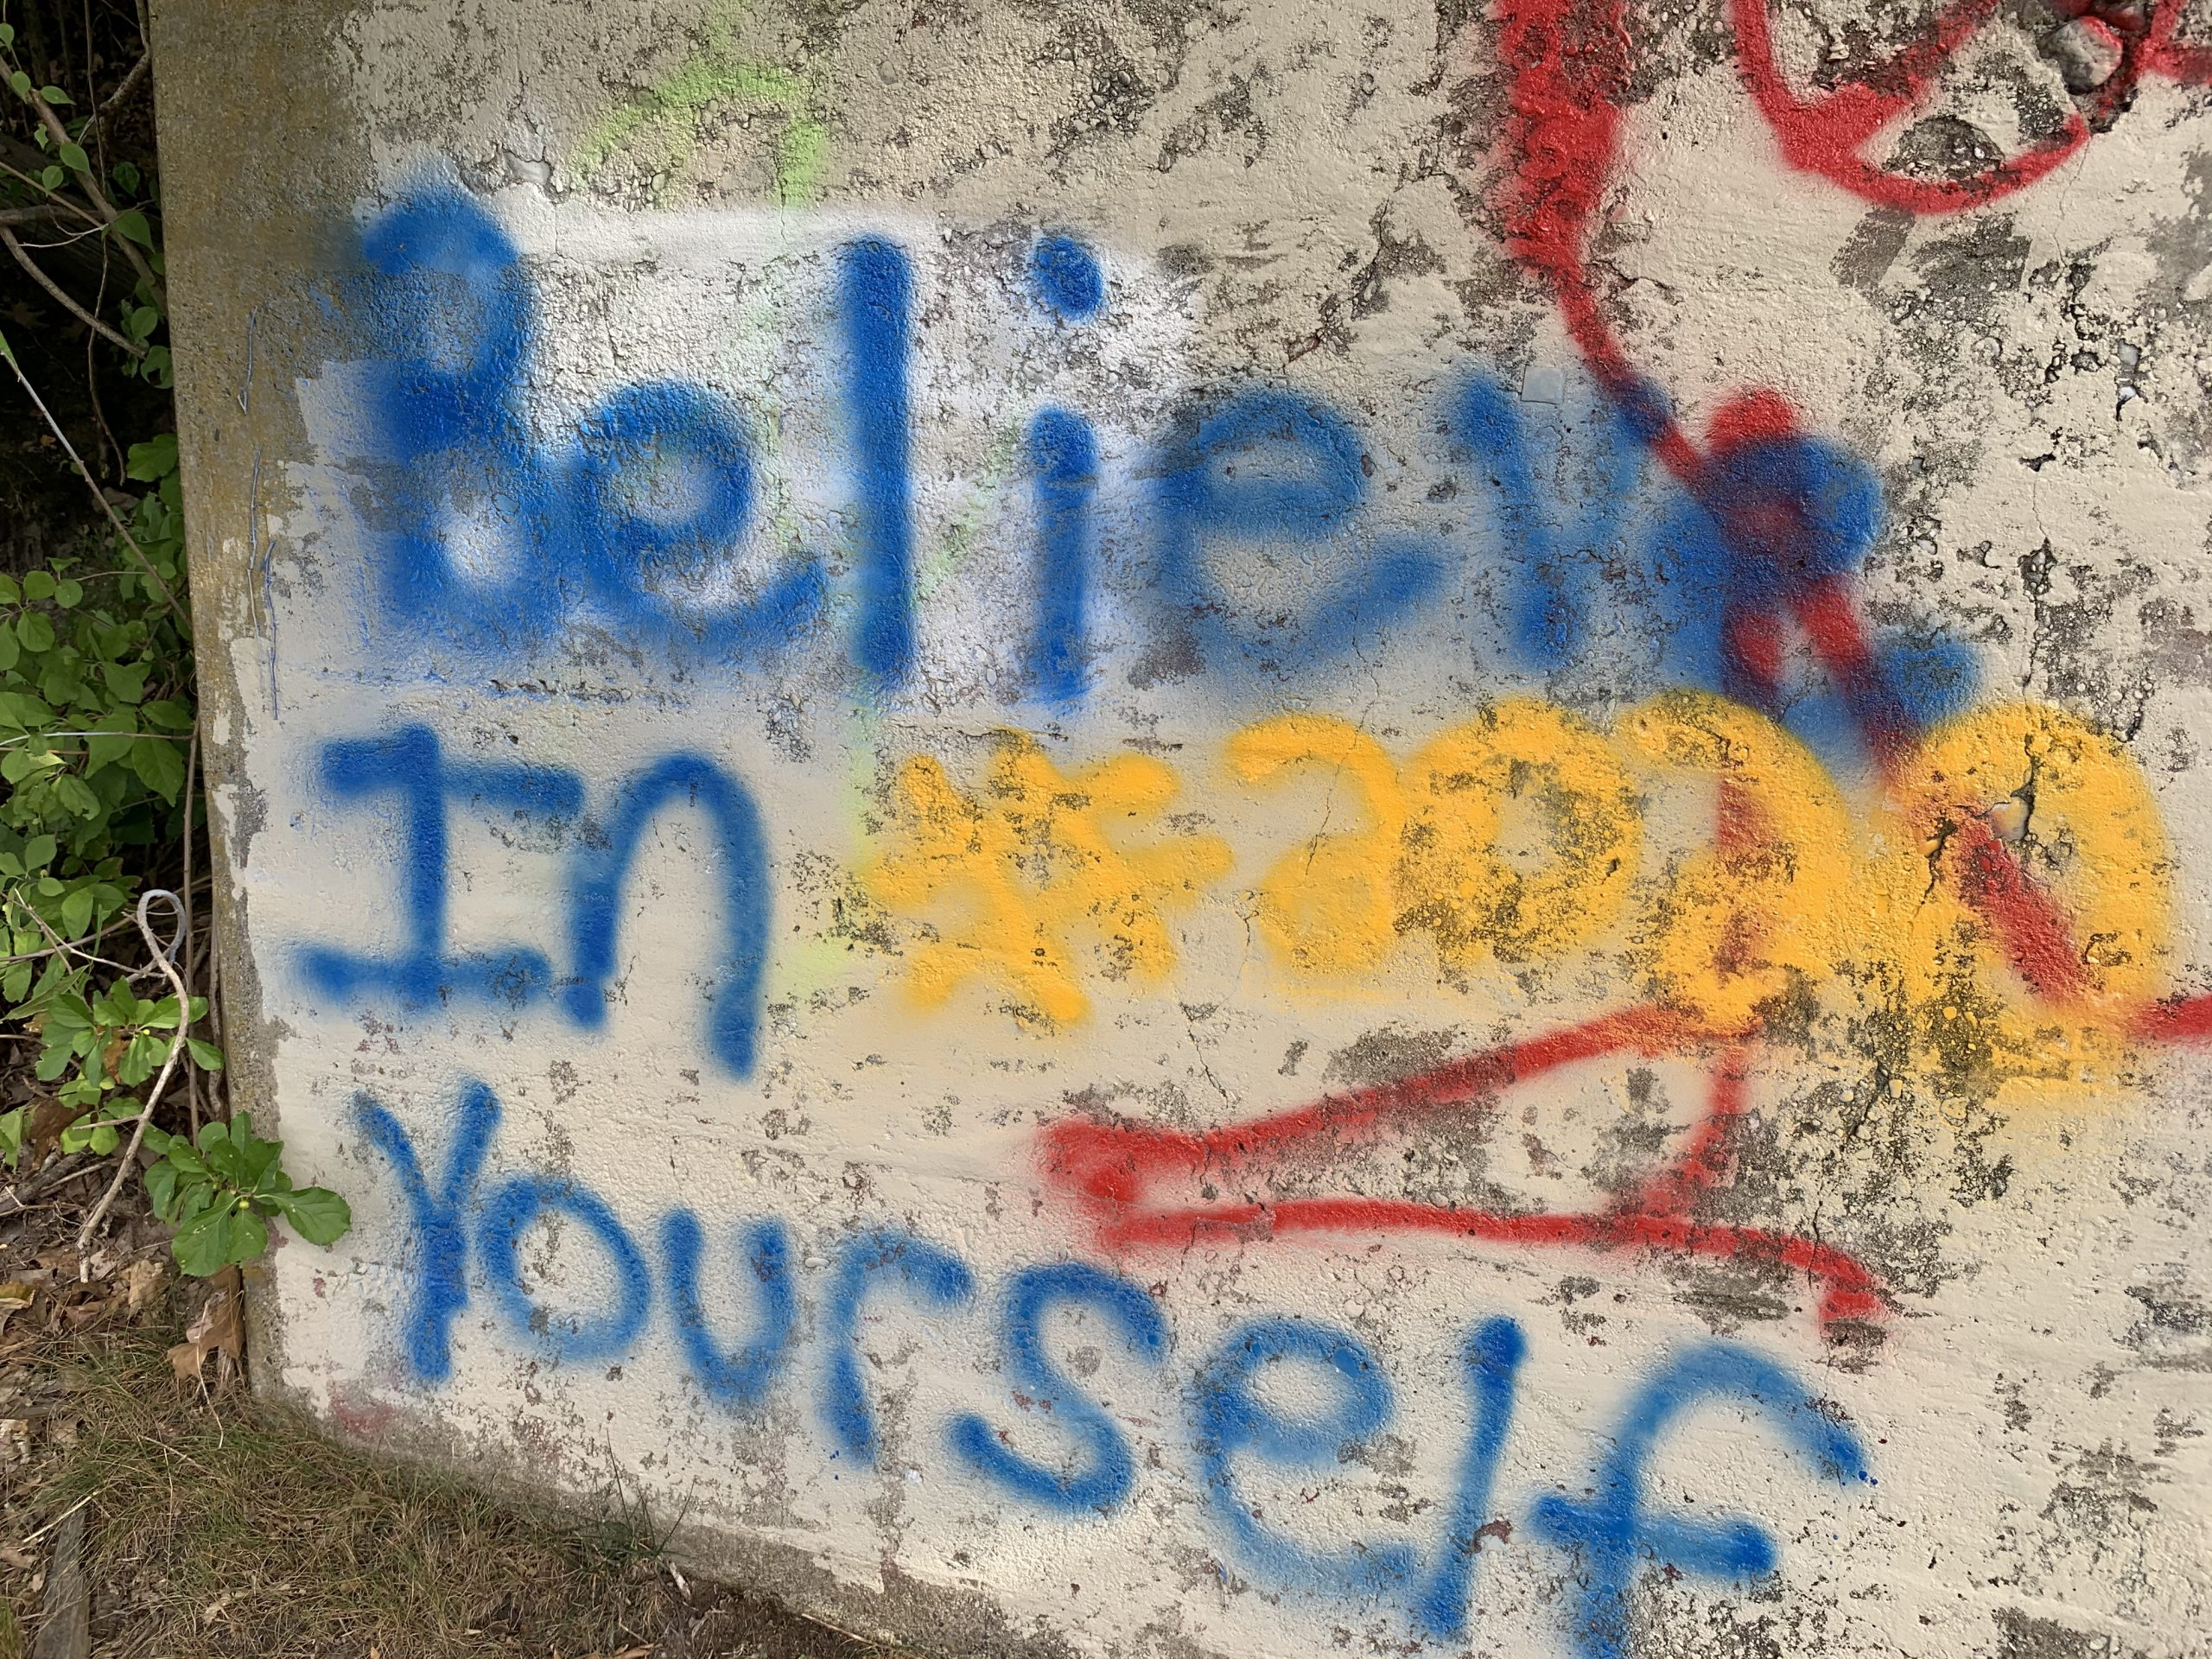 Graffiti stating, 'believe in yourself' found along the canal rail trial in Turner's Falls, MA.